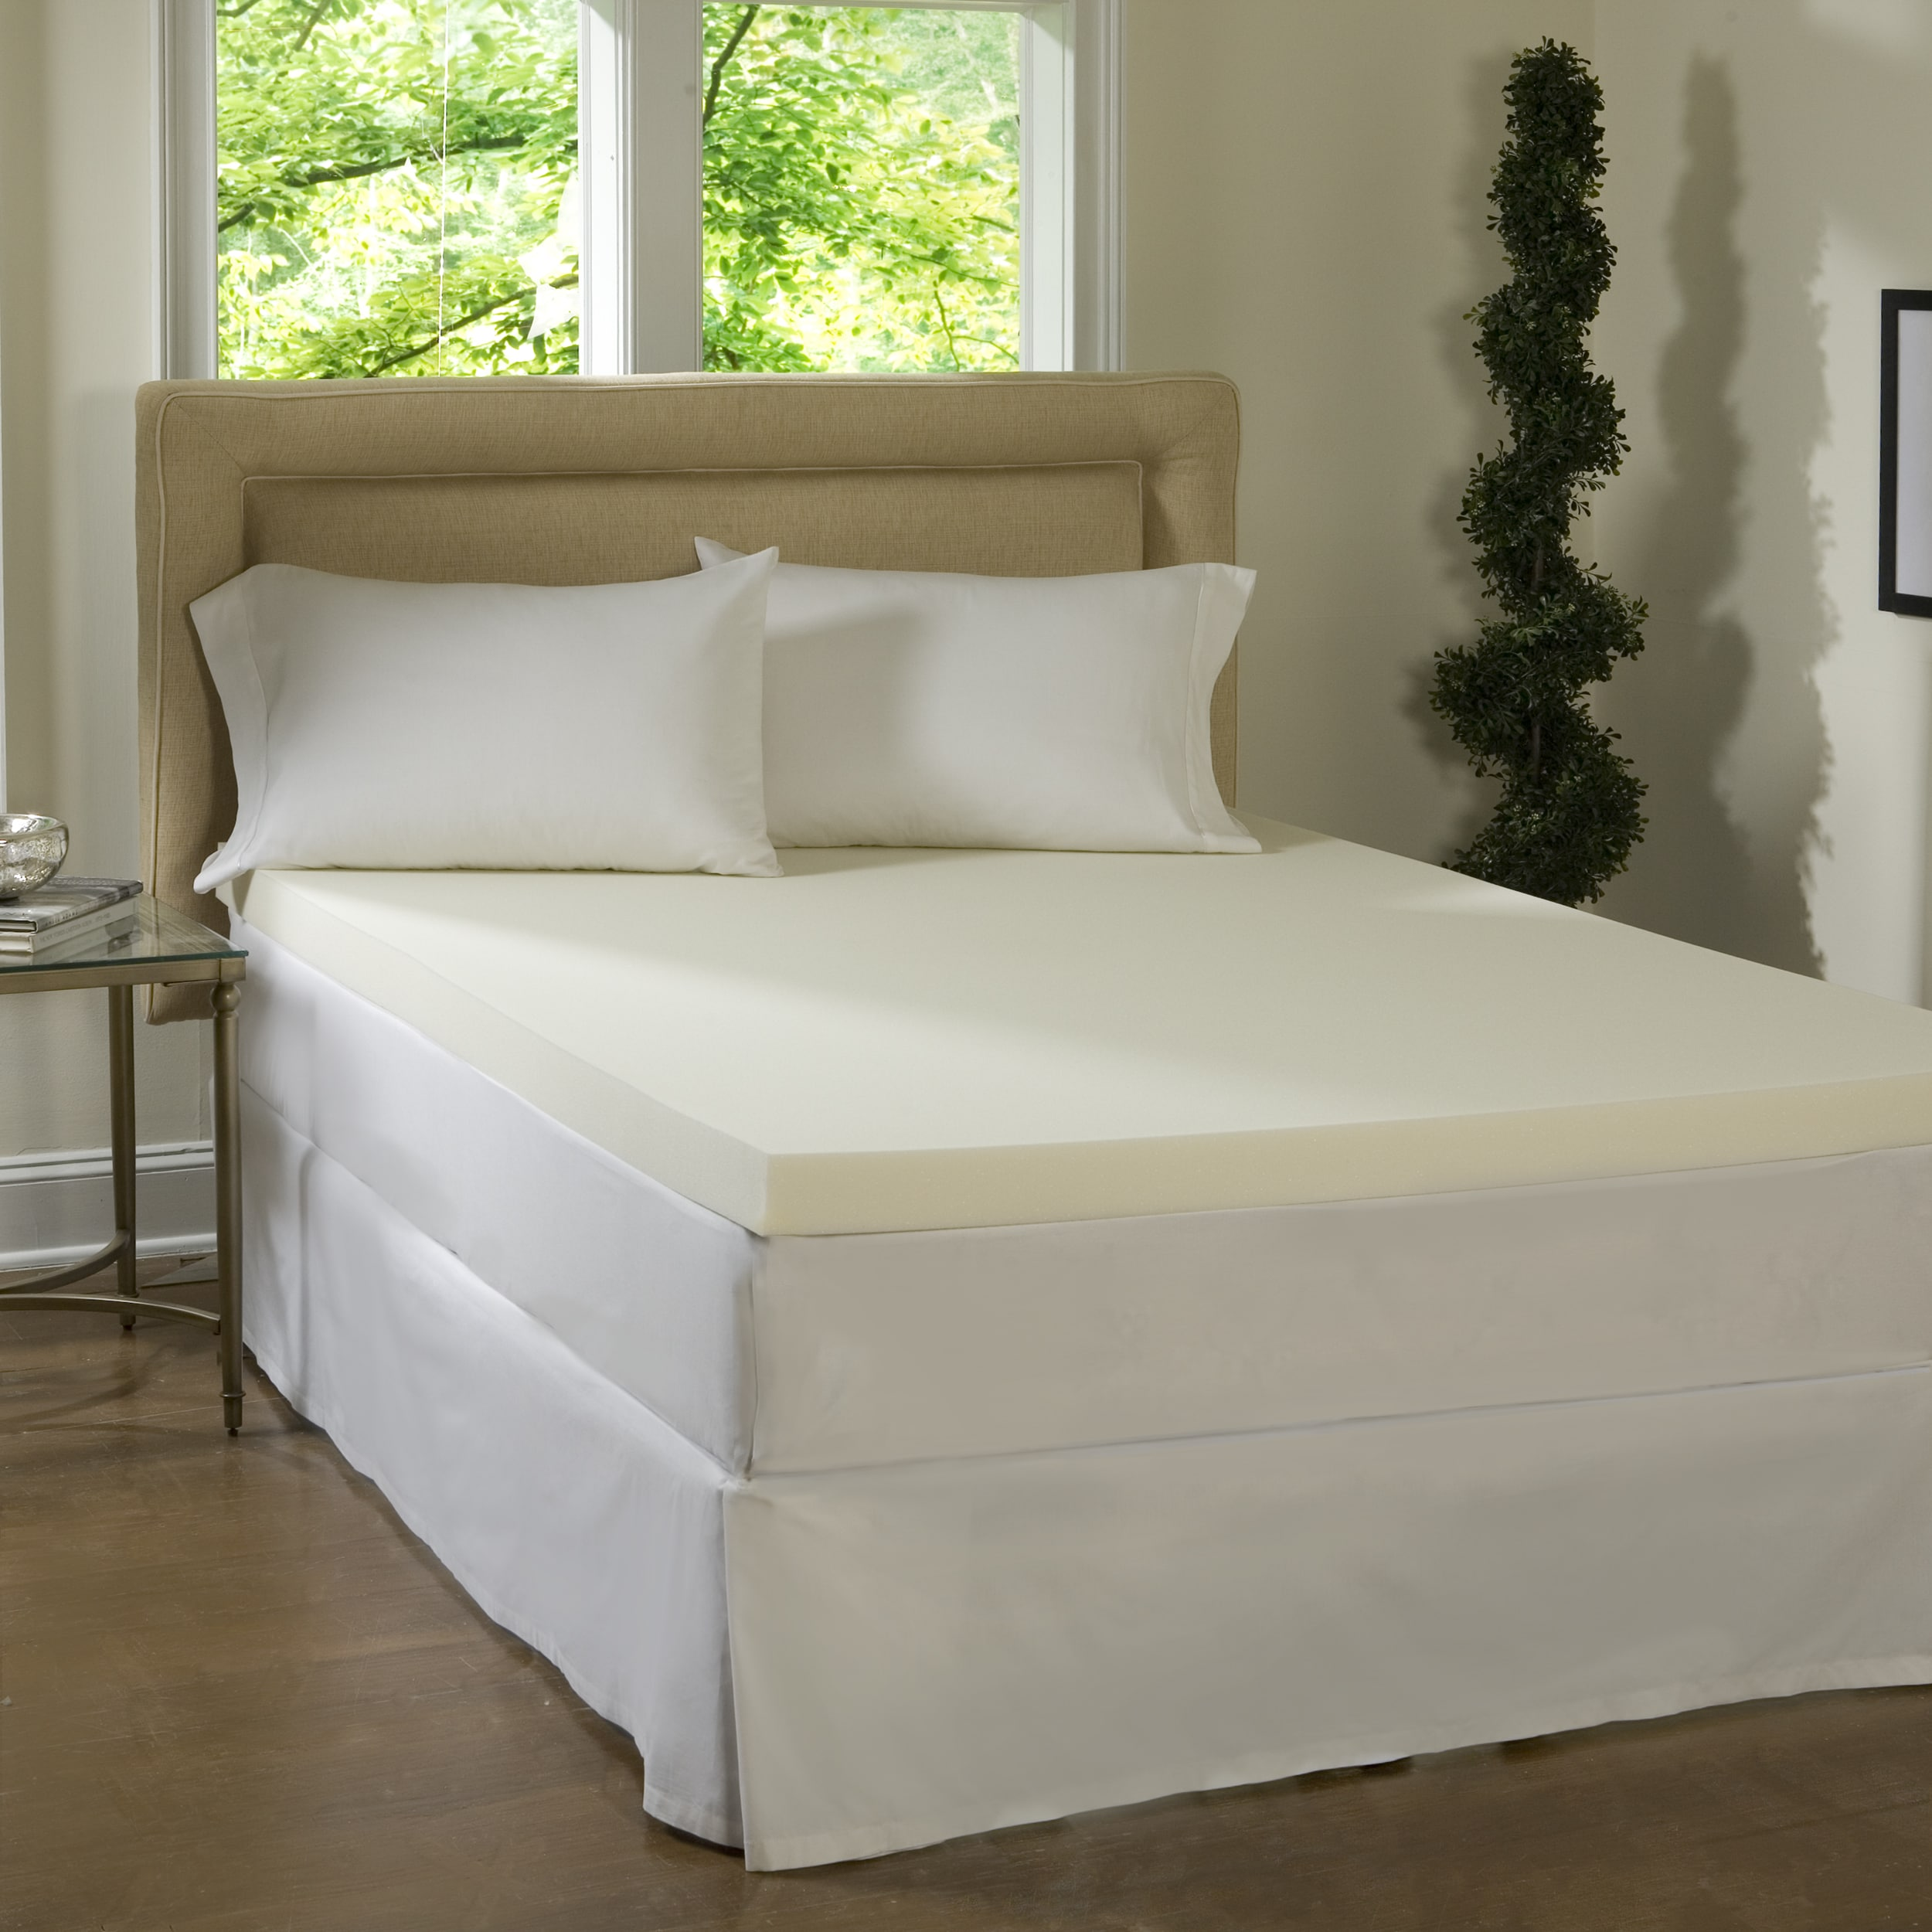 Extra Firm Mattress Topper Comforpedic Loft From Beautyrest 2 Inch Memory Foam Mattress Topper